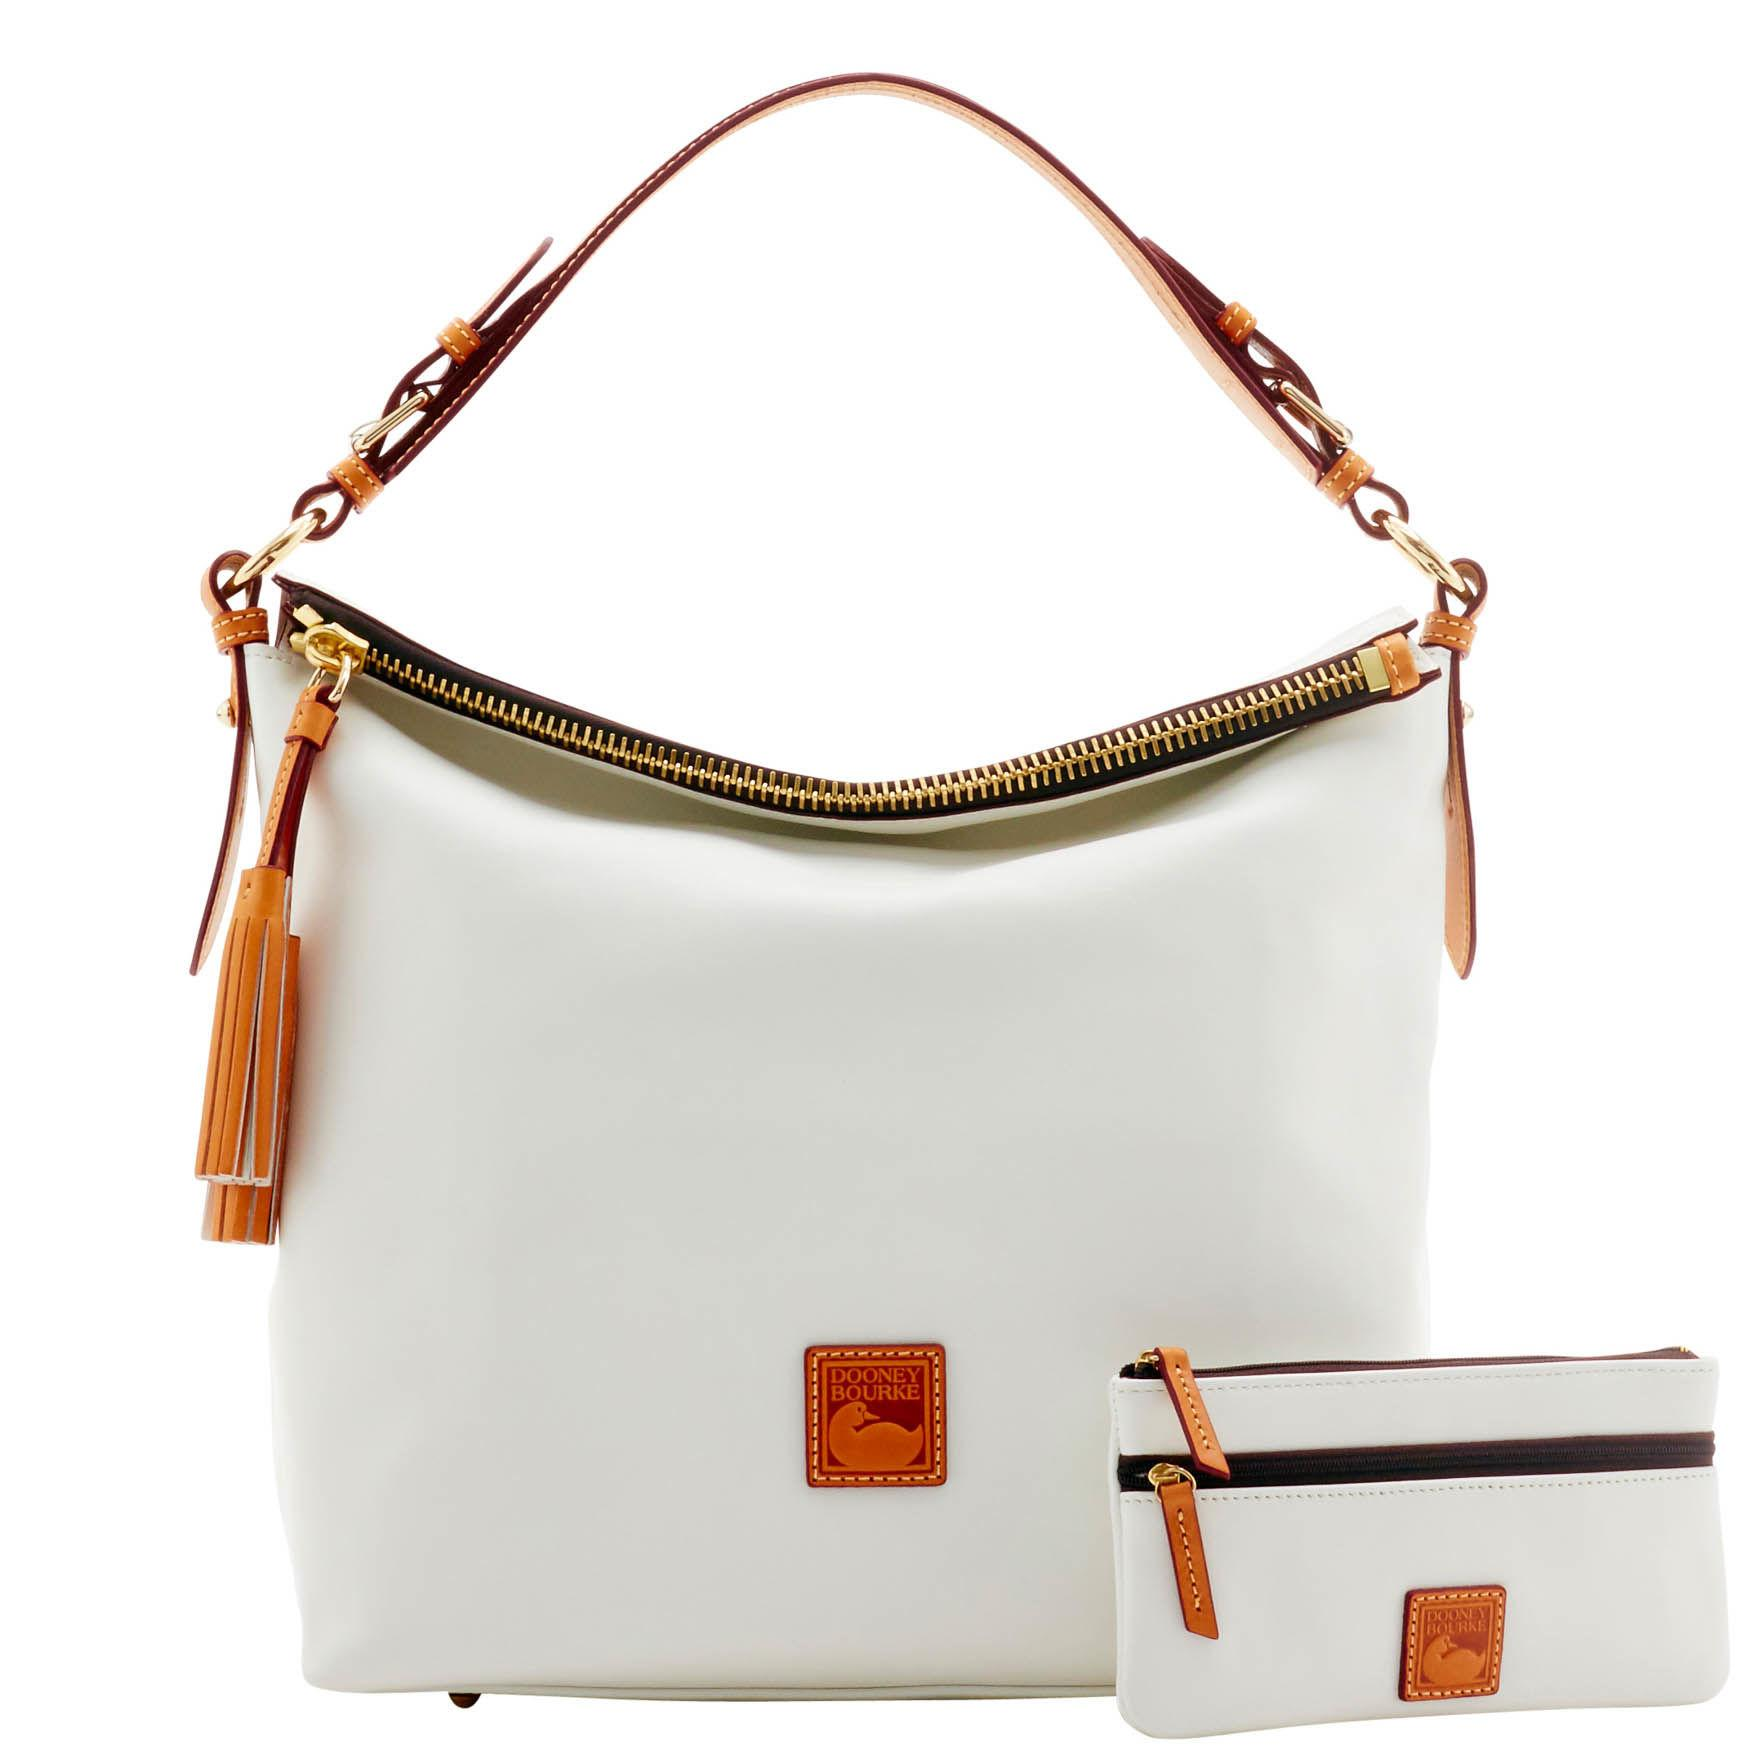 2a4f728701 Lyst - Dooney   Bourke Wexford Leather Mckenzie Hobo in White